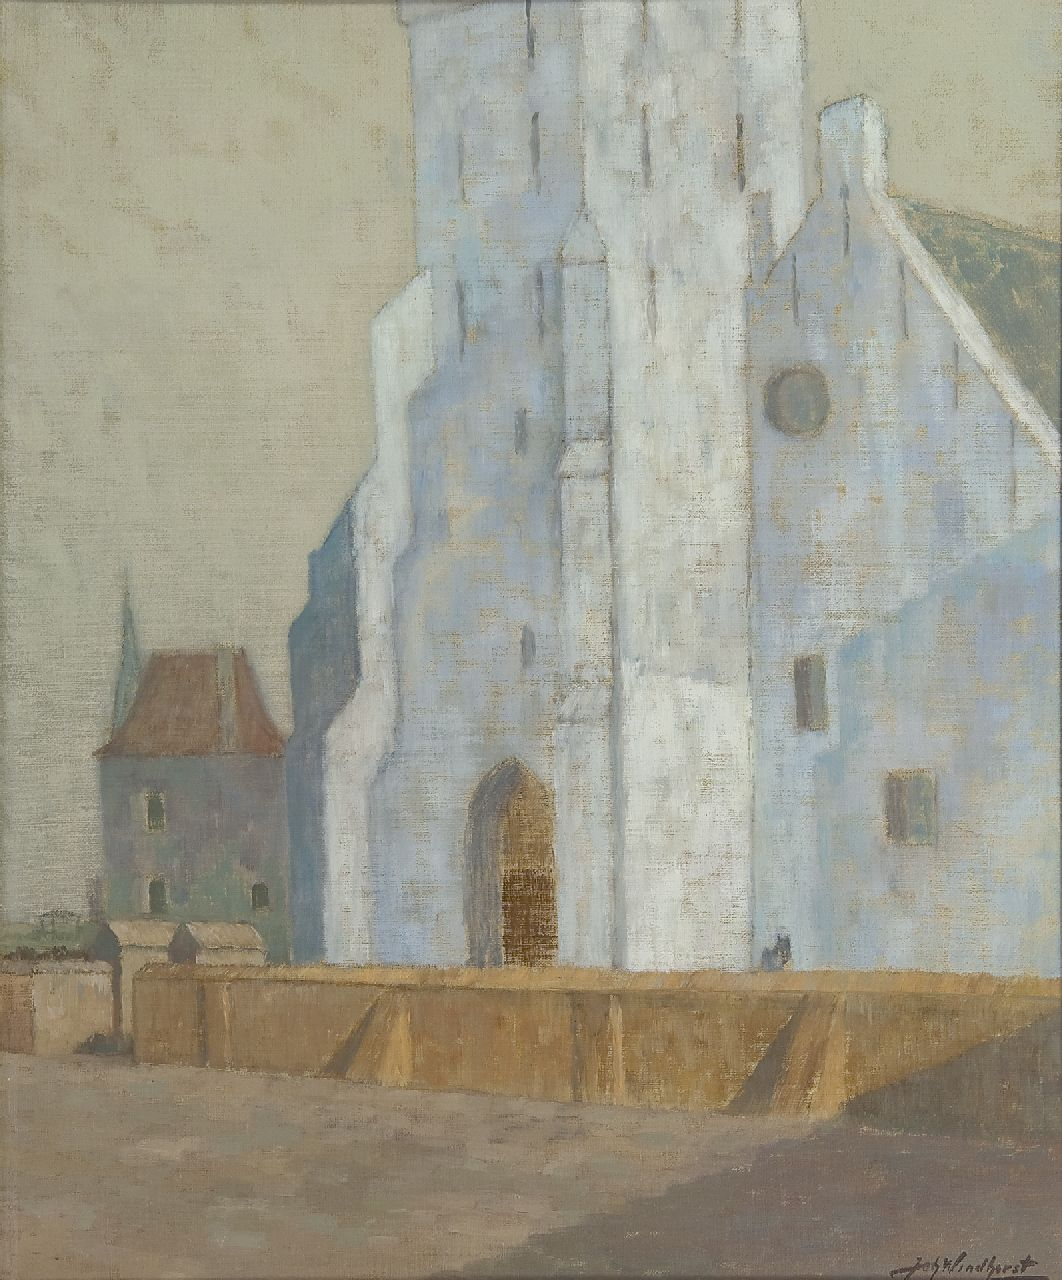 Windhorst J.C.  | The Andreaskerk, Katwijk aan Zee, oil on canvas, 50.6 x 41.5 cm, signed l.r. and dated September 1928 on the stretcher